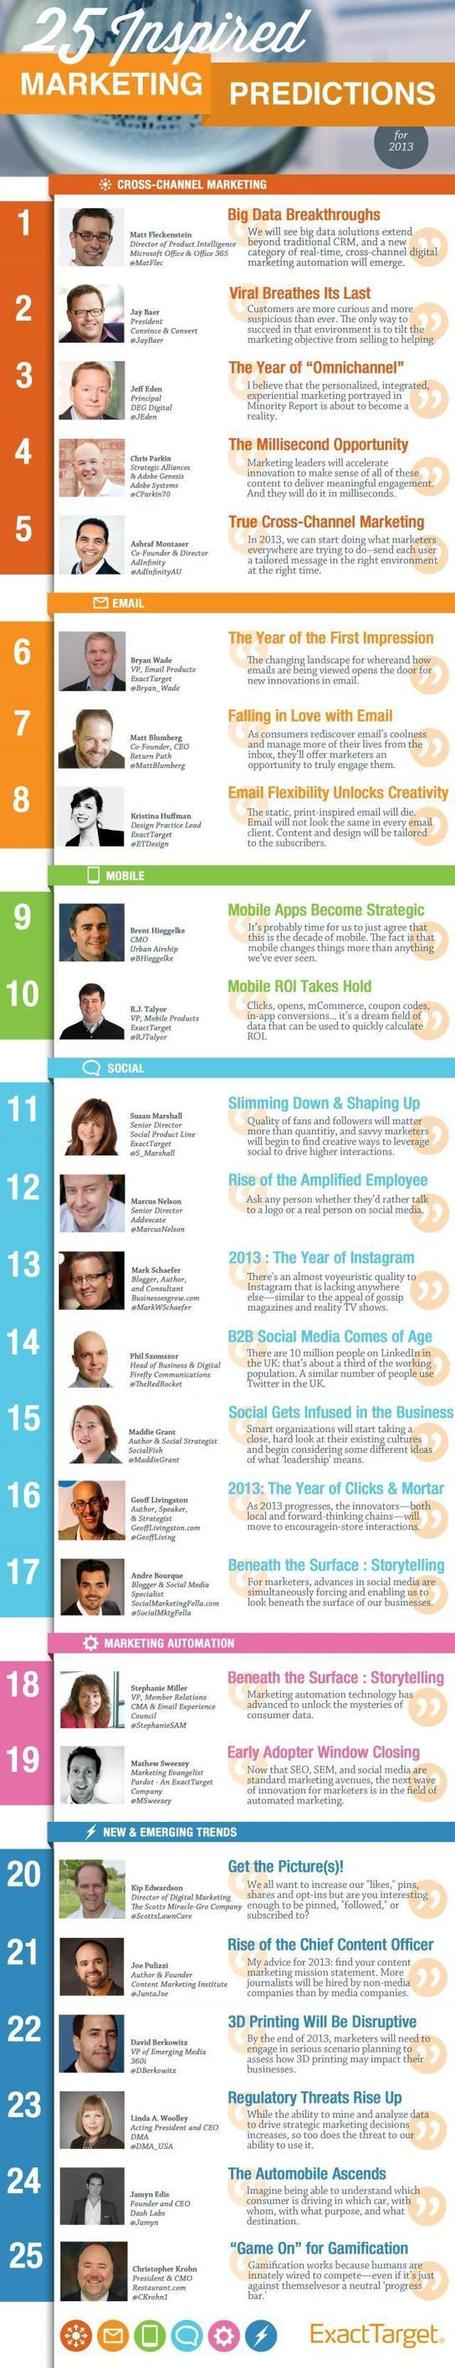 25 Inspired Marketing Predictions for 2013 | Social Media (network, technology, blog, community, virtual reality, etc...) | Scoop.it